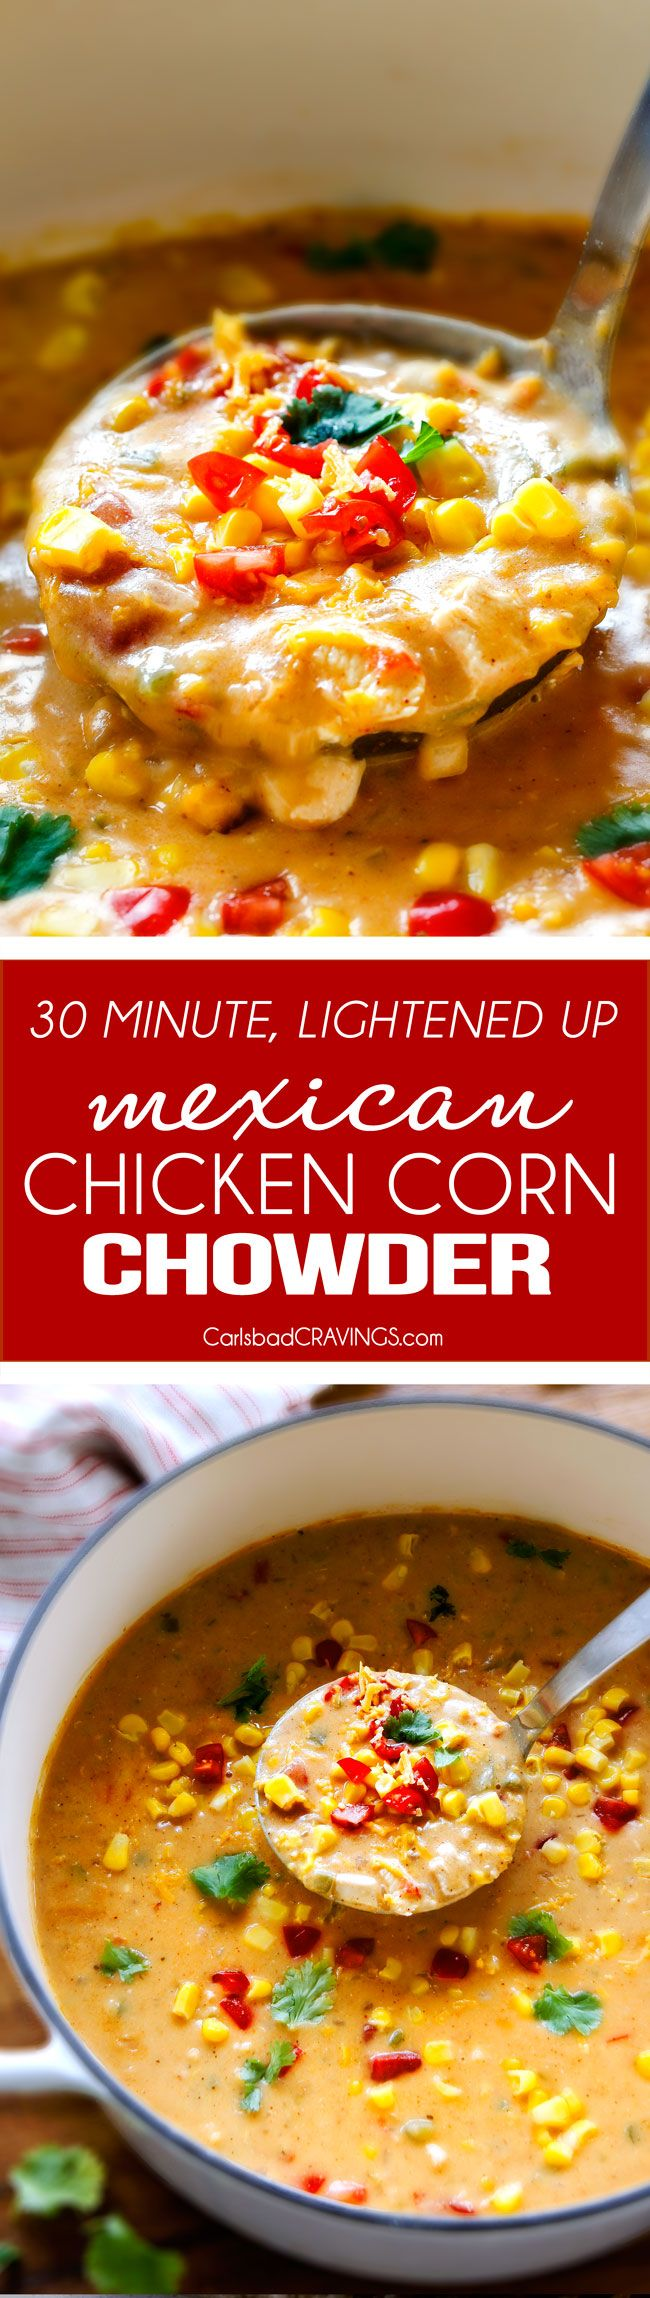 30 Minute LIGHTENED UP Mexican Chicken Corn Chowder is one of my family's favorite soups ever! Its cheesy, creamy (without any heavy cream!), comforting and the layers of flavors are out of this world - and made in one pot!